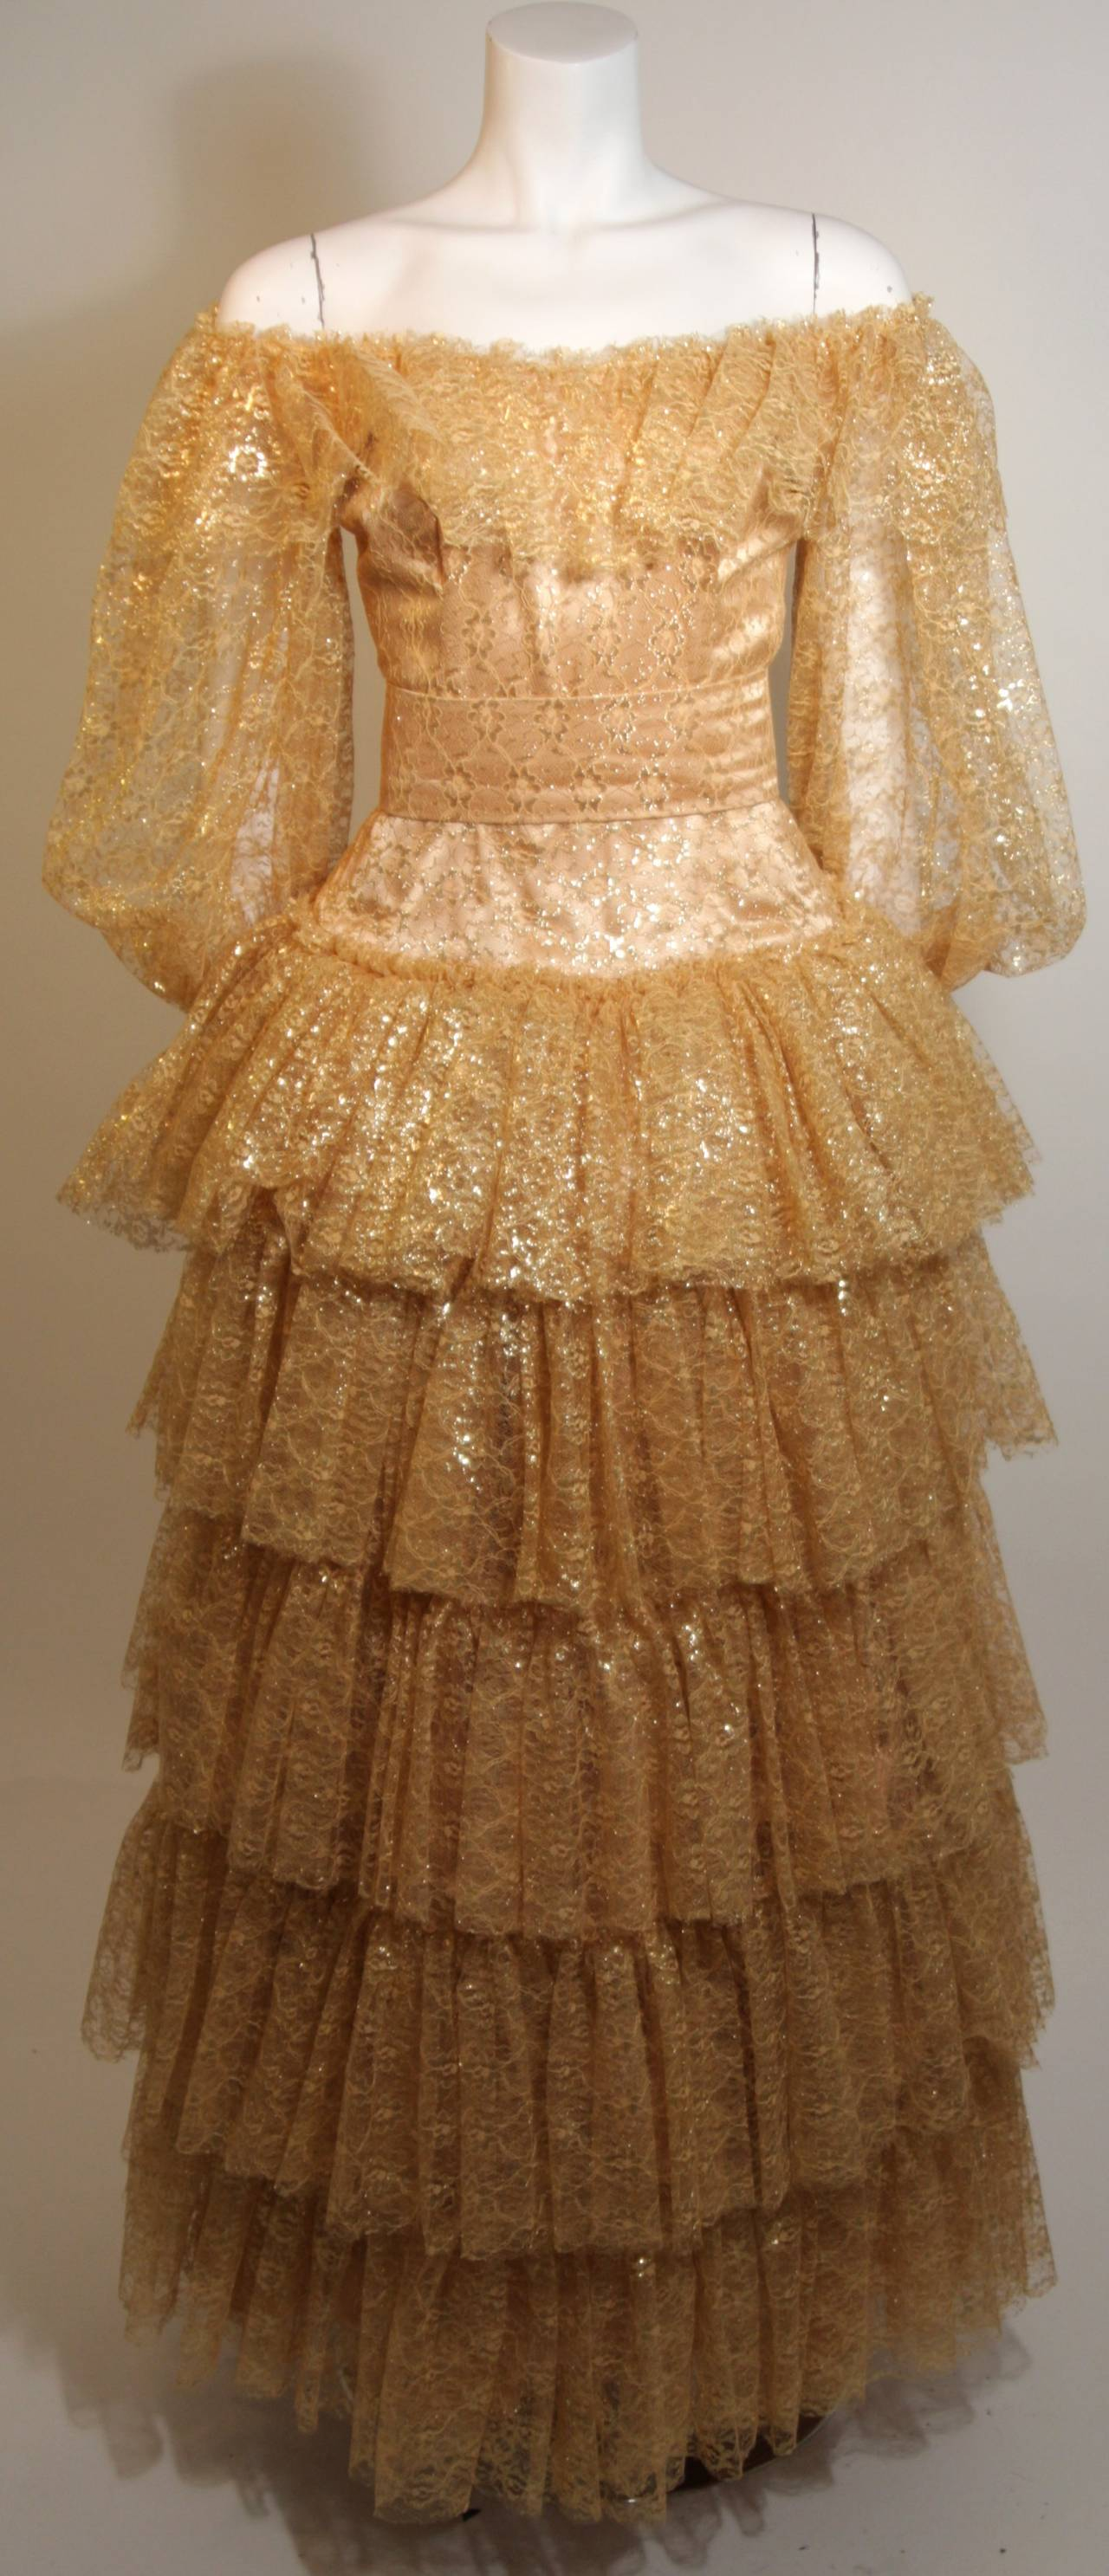 A dream of gold lace has a fully lined fitted bodice and sheer lace sleeve with elastic at the wrists. The tiered skirt was accented with a crinoline for the photographs and is sold separately.  The gown can be worn on or off-the-shoulders as there